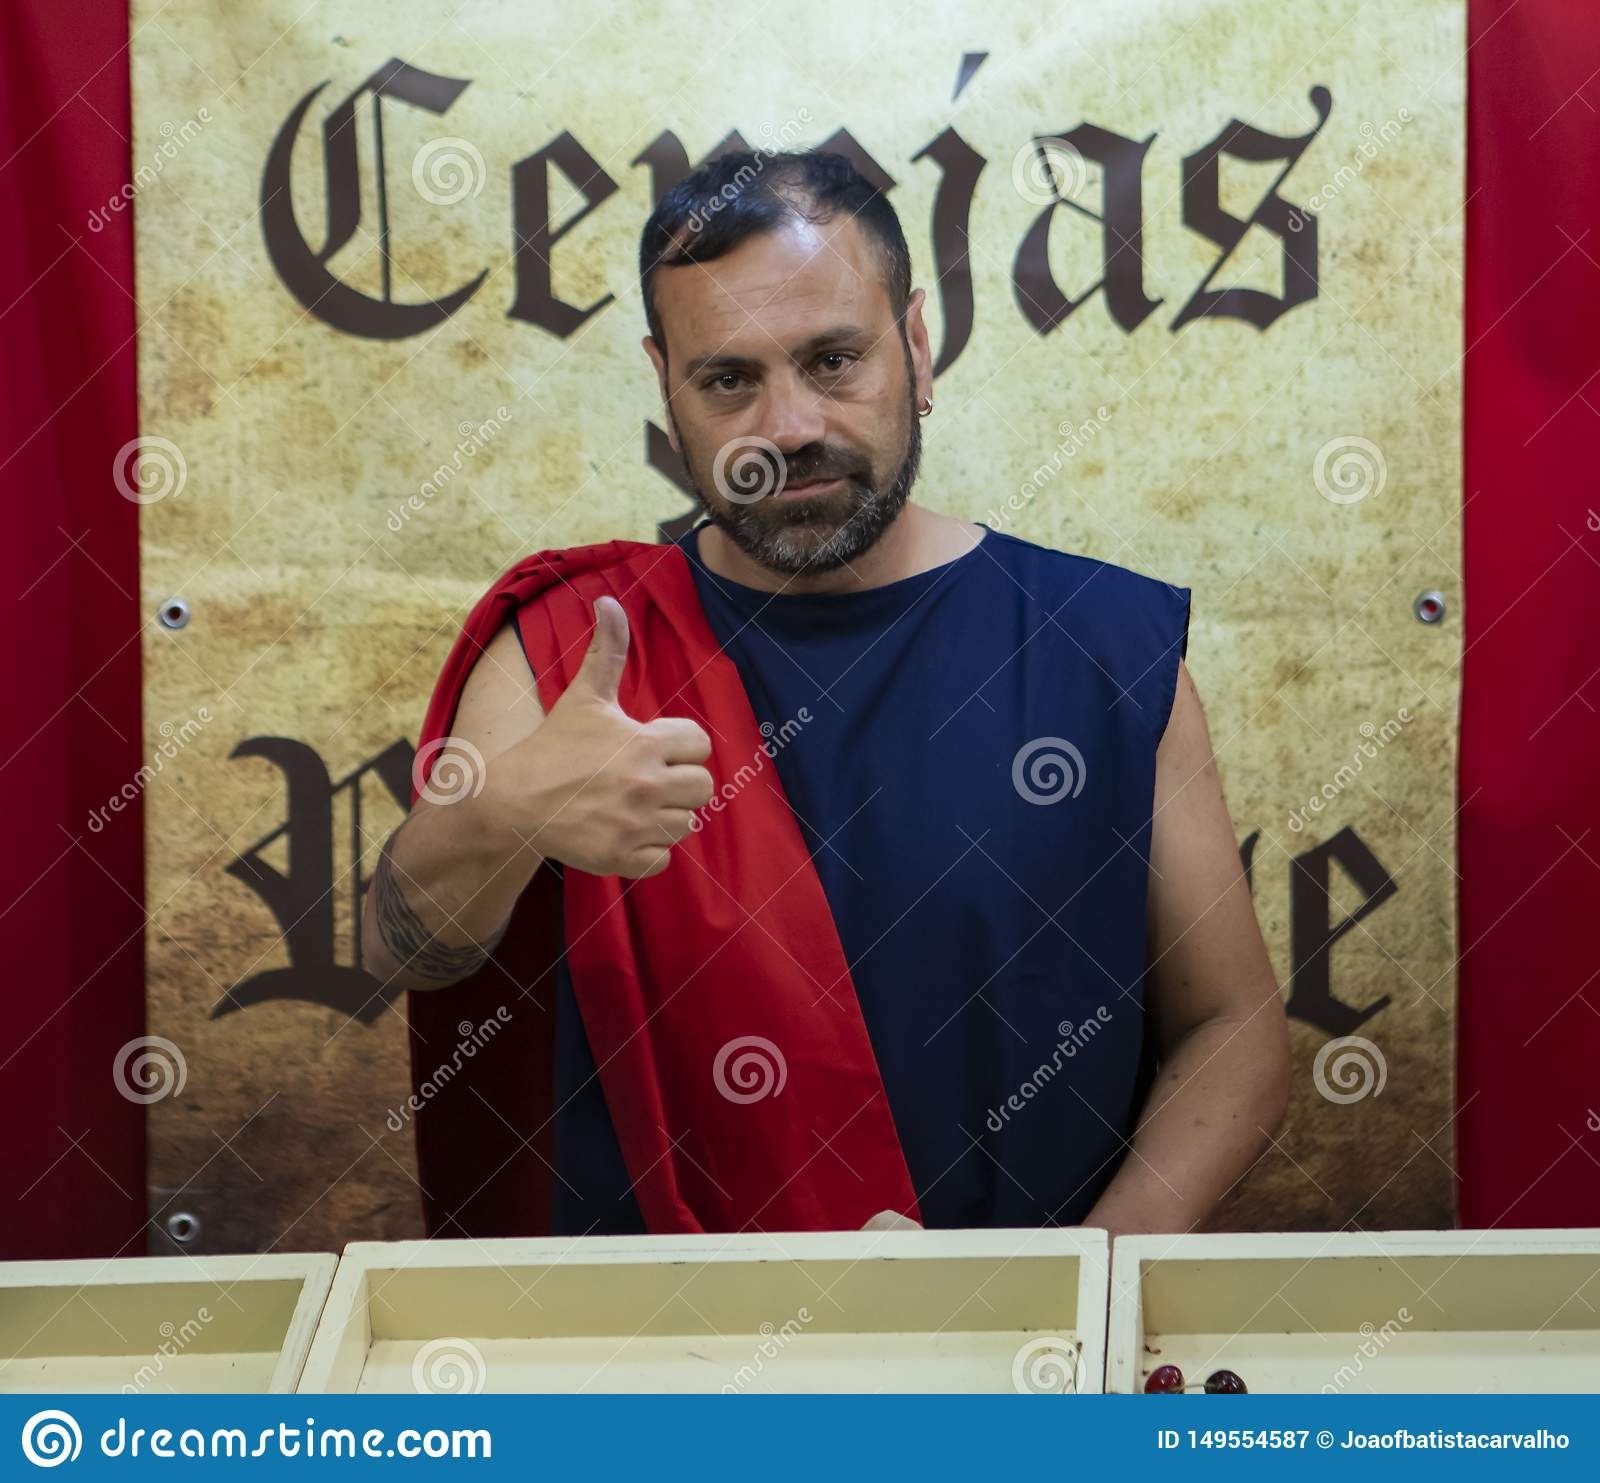 Braga, Portugal - May 24, 2019: Merchant roman man at Braga Romana